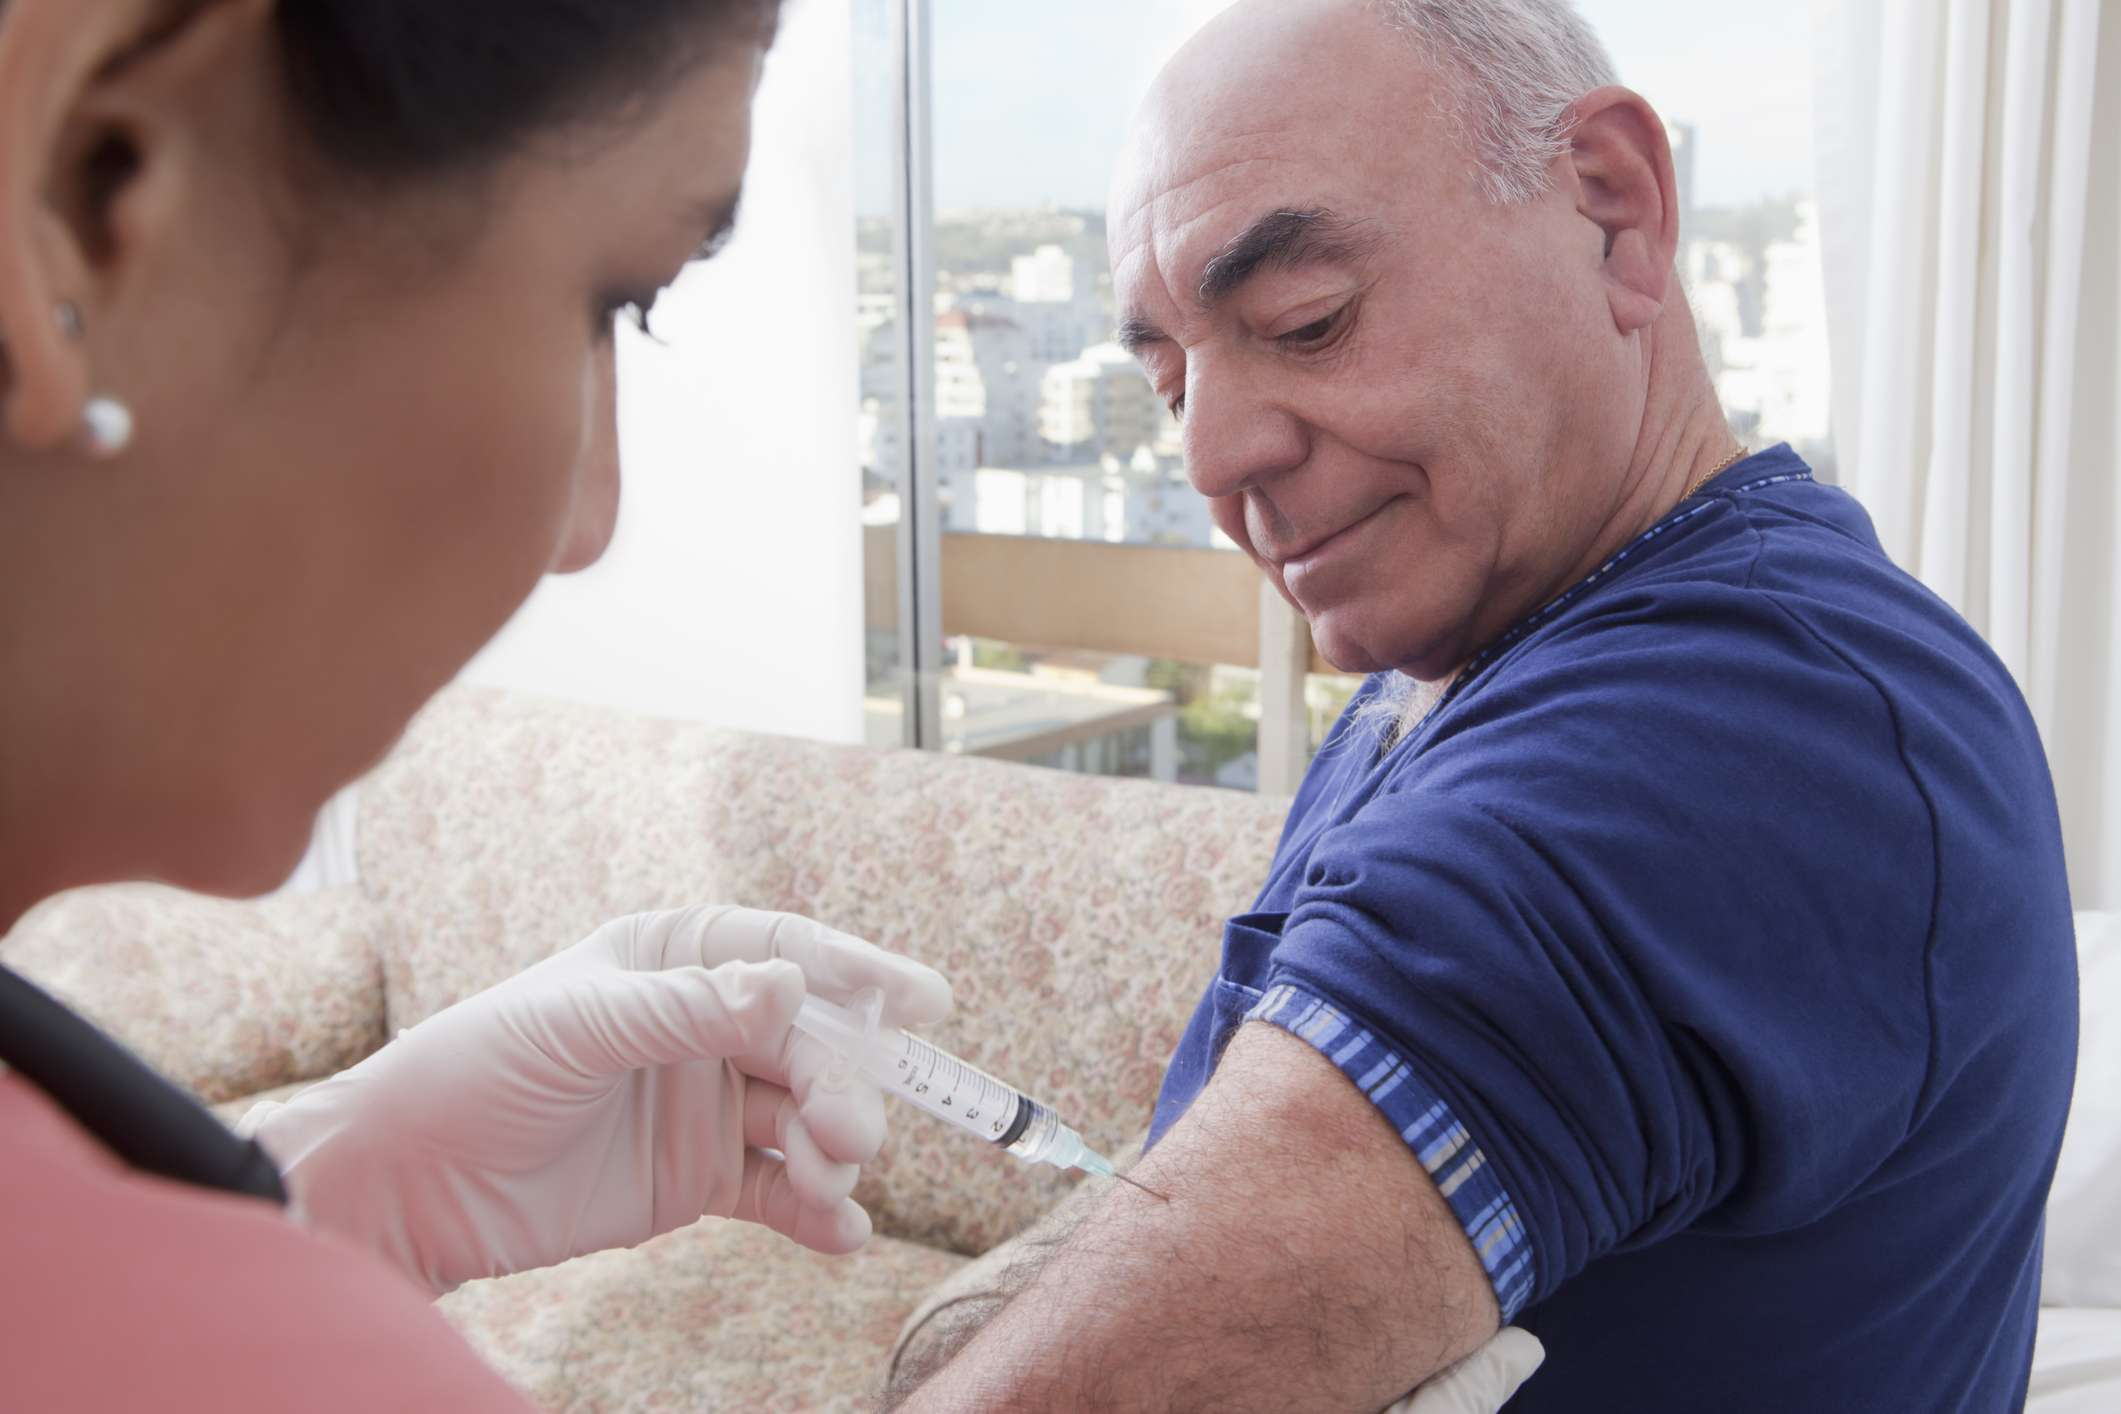 A woman is giving a man an injection in the arm. The woman is on the left of the photo, the man is to the right and wearing a short sleeve blue shirt.